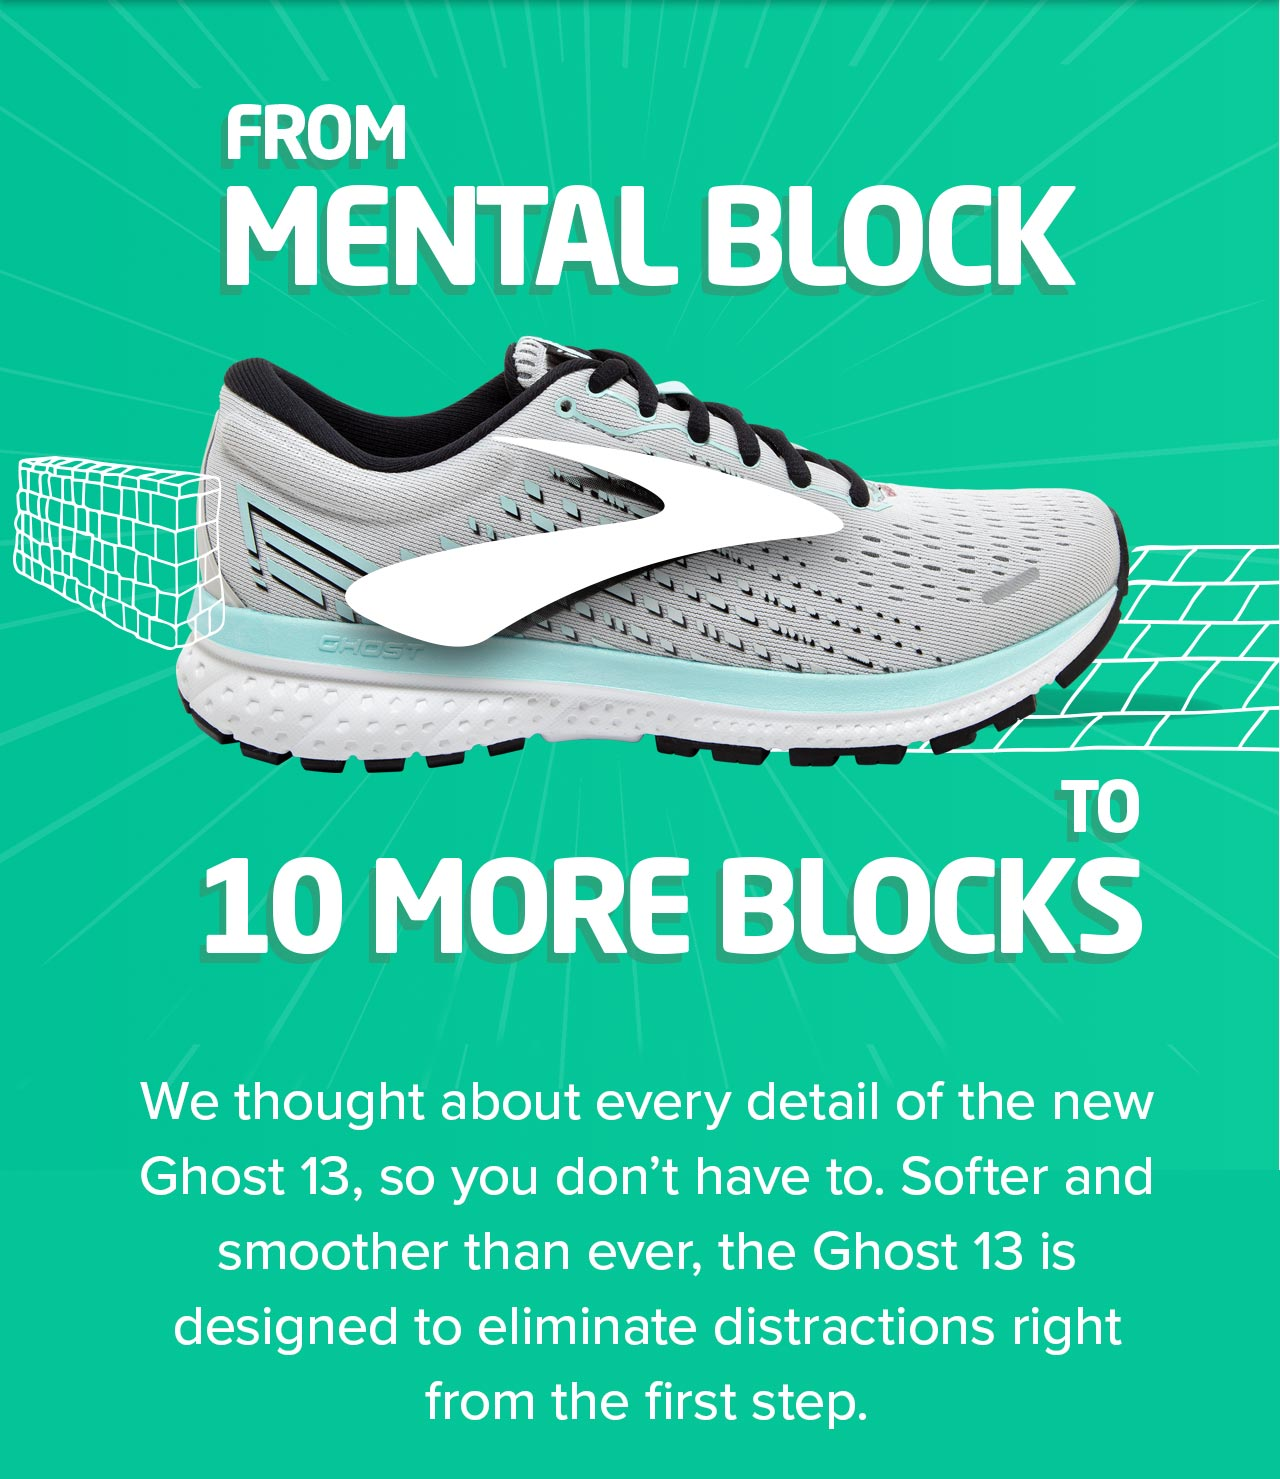 From Mental Block to 10 MORE BLOCKS. We thought about every detail of the new Ghost 13, so you don''t have to. Softer and smoother than ever, the Ghost 13 is designed to eliminate distractions right from the first step.